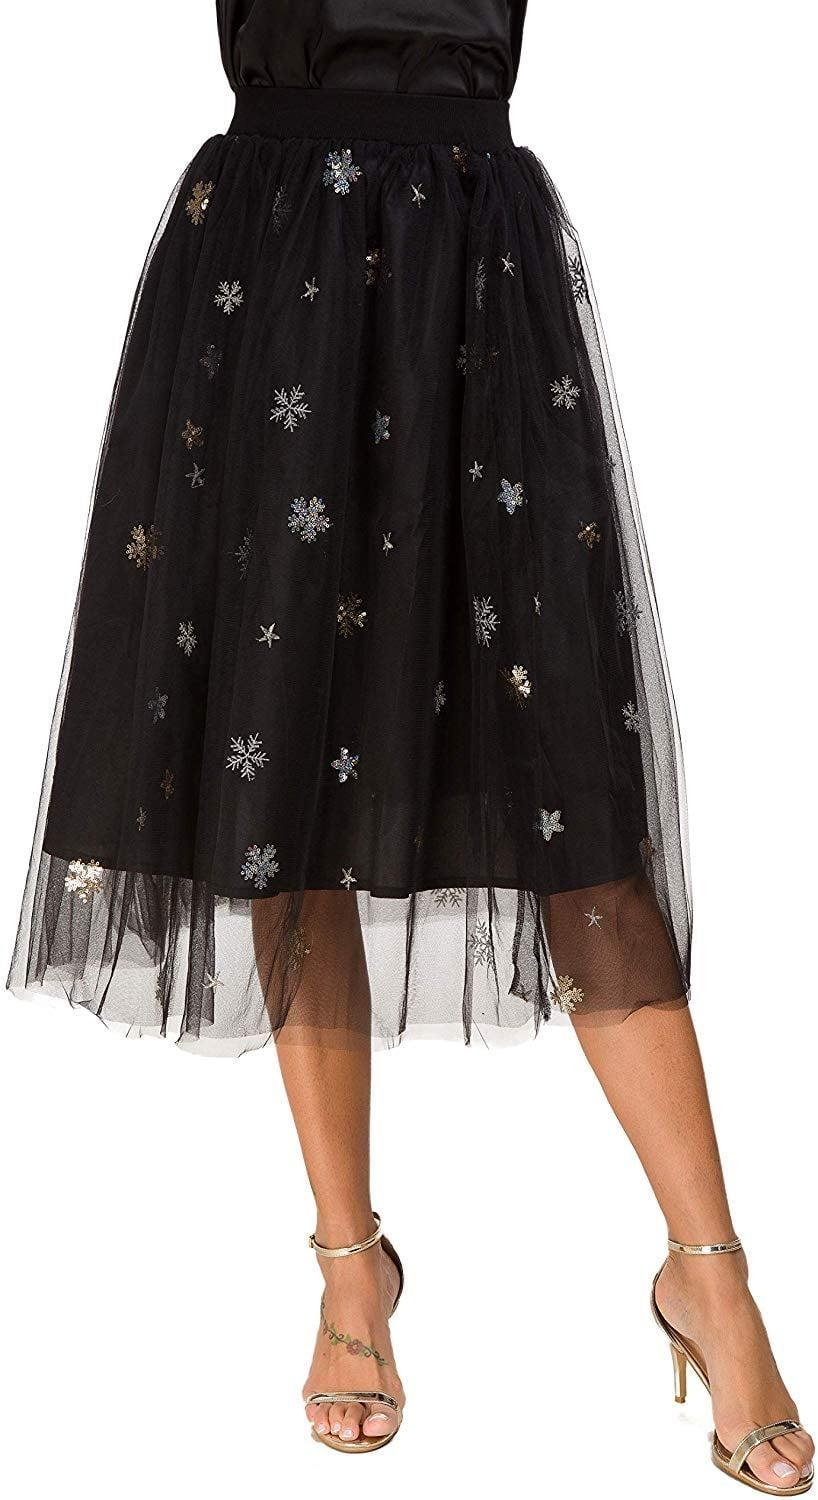 """<p>Nothing says the holidays quite like this <a href=""""https://www.popsugar.com/buy/Alcea-Sparkly-Snowflake-Tulle-Skirt-512894?p_name=Alcea%20Sparkly%20Snowflake%20Tulle%20Skirt&retailer=amazon.com&pid=512894&price=20&evar1=fab%3Aus&evar9=46859993&evar98=https%3A%2F%2Fwww.popsugar.com%2Ffashion%2Fphoto-gallery%2F46859993%2Fimage%2F46860974%2FAlcea-Sparkly-Snowflake-Tulle-Skirt&list1=shopping%2Camazon%2Choliday%2Cwinter%20fashion%2Choliday%20fashion%2C50%20under%20%2450%2Cgifts%20for%20women%2Caffordable%20shopping&prop13=mobile&pdata=1"""" rel=""""nofollow noopener"""" class=""""link rapid-noclick-resp"""" target=""""_blank"""" data-ylk=""""slk:Alcea Sparkly Snowflake Tulle Skirt"""">Alcea Sparkly Snowflake Tulle Skirt</a> ($20).</p>"""